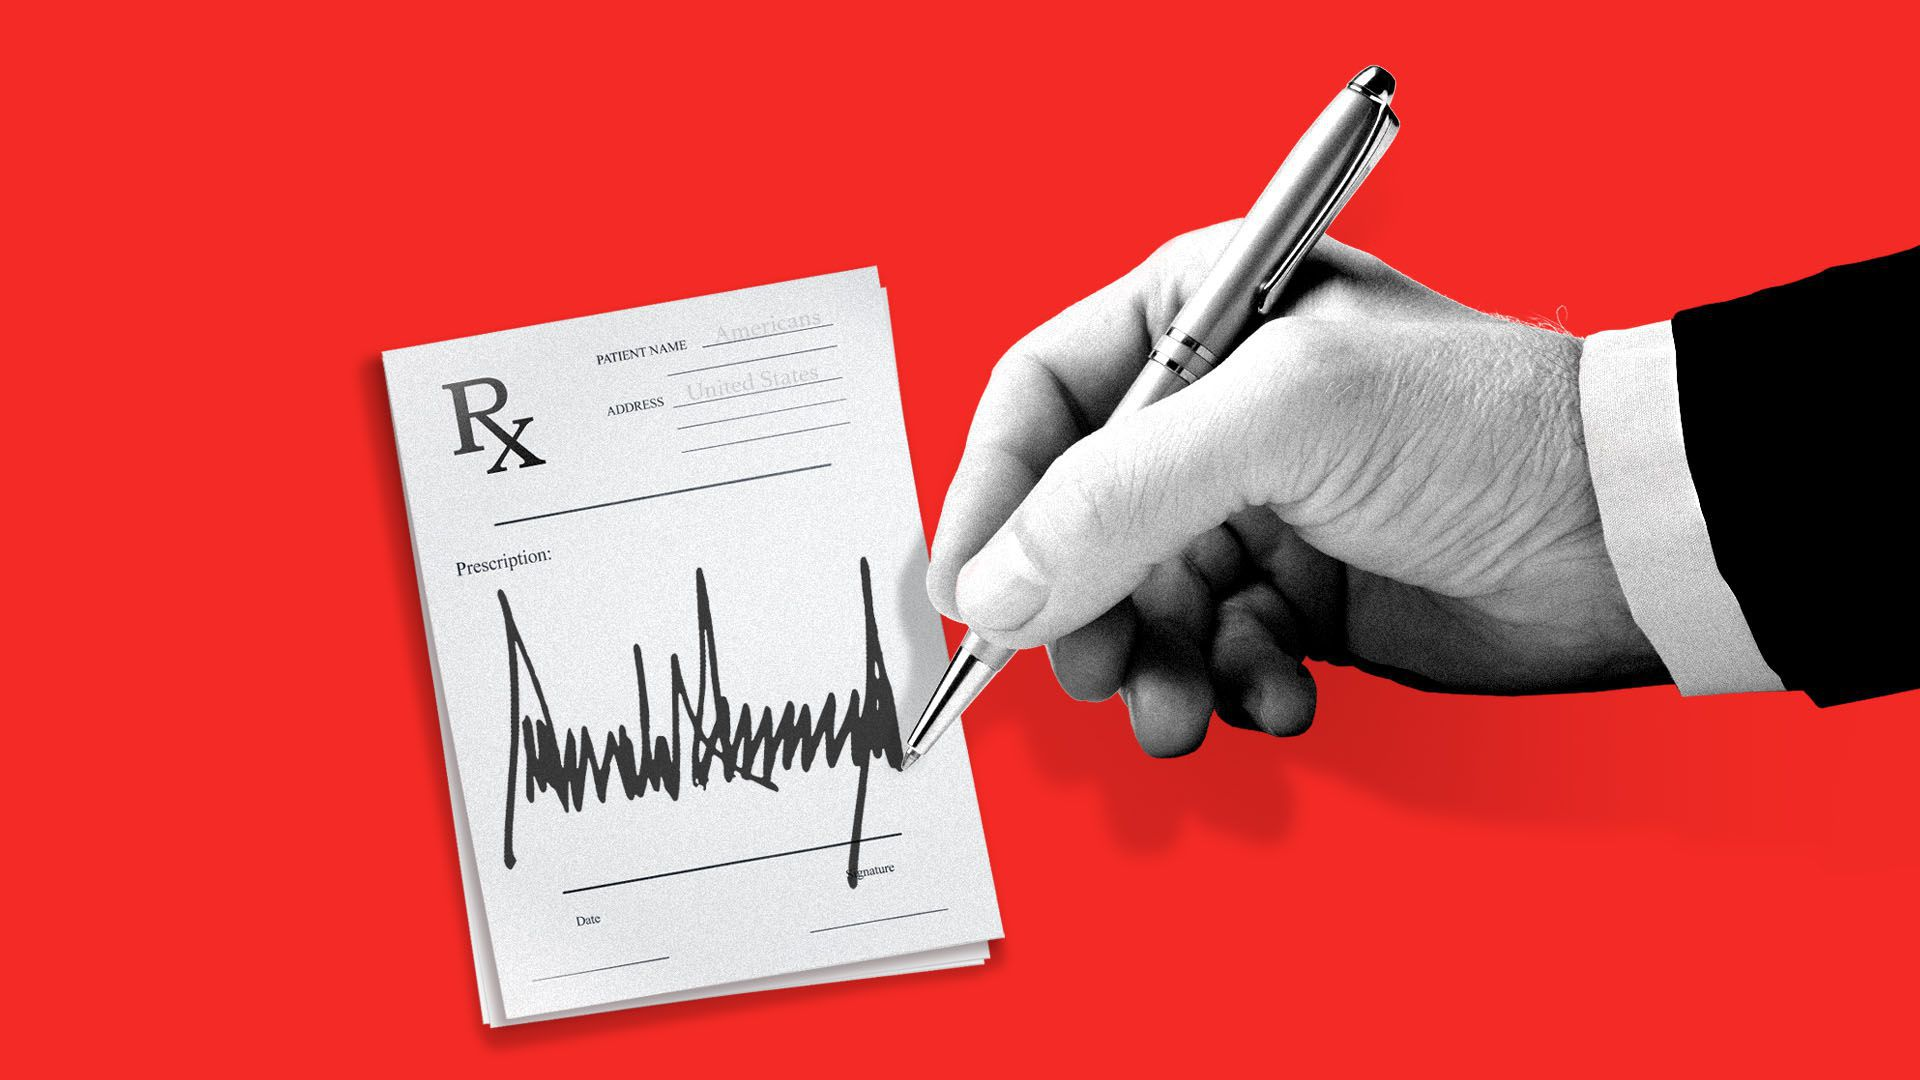 Illustration of Trump filling out prescription